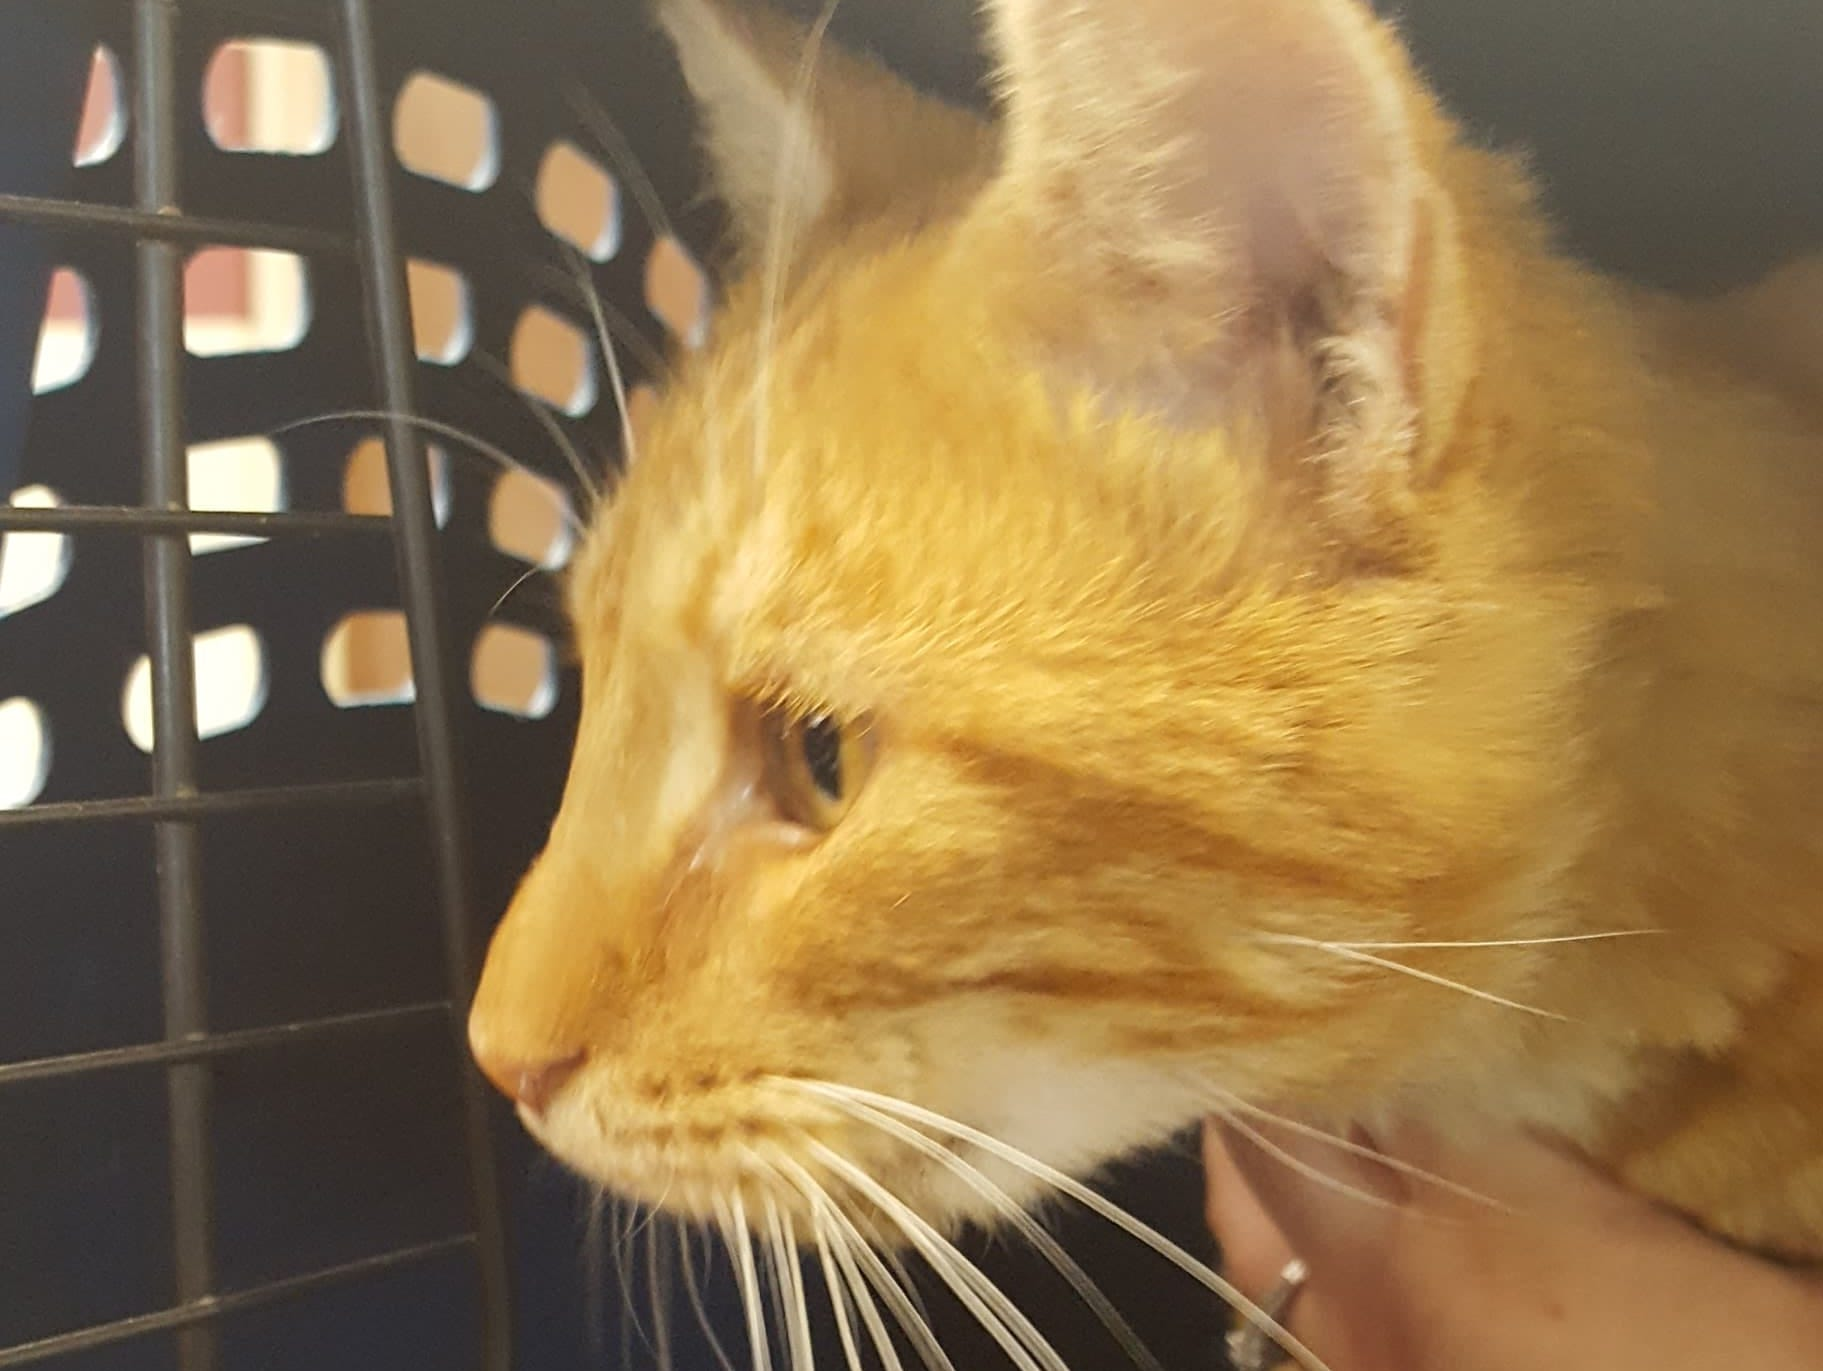 Bang, formerly known as Tang, was taken in by Rutherford County Cat Rescue. He sustained a gunshot to the leg, which was later amputated, and damage to his mouth, which left a gaping hole.